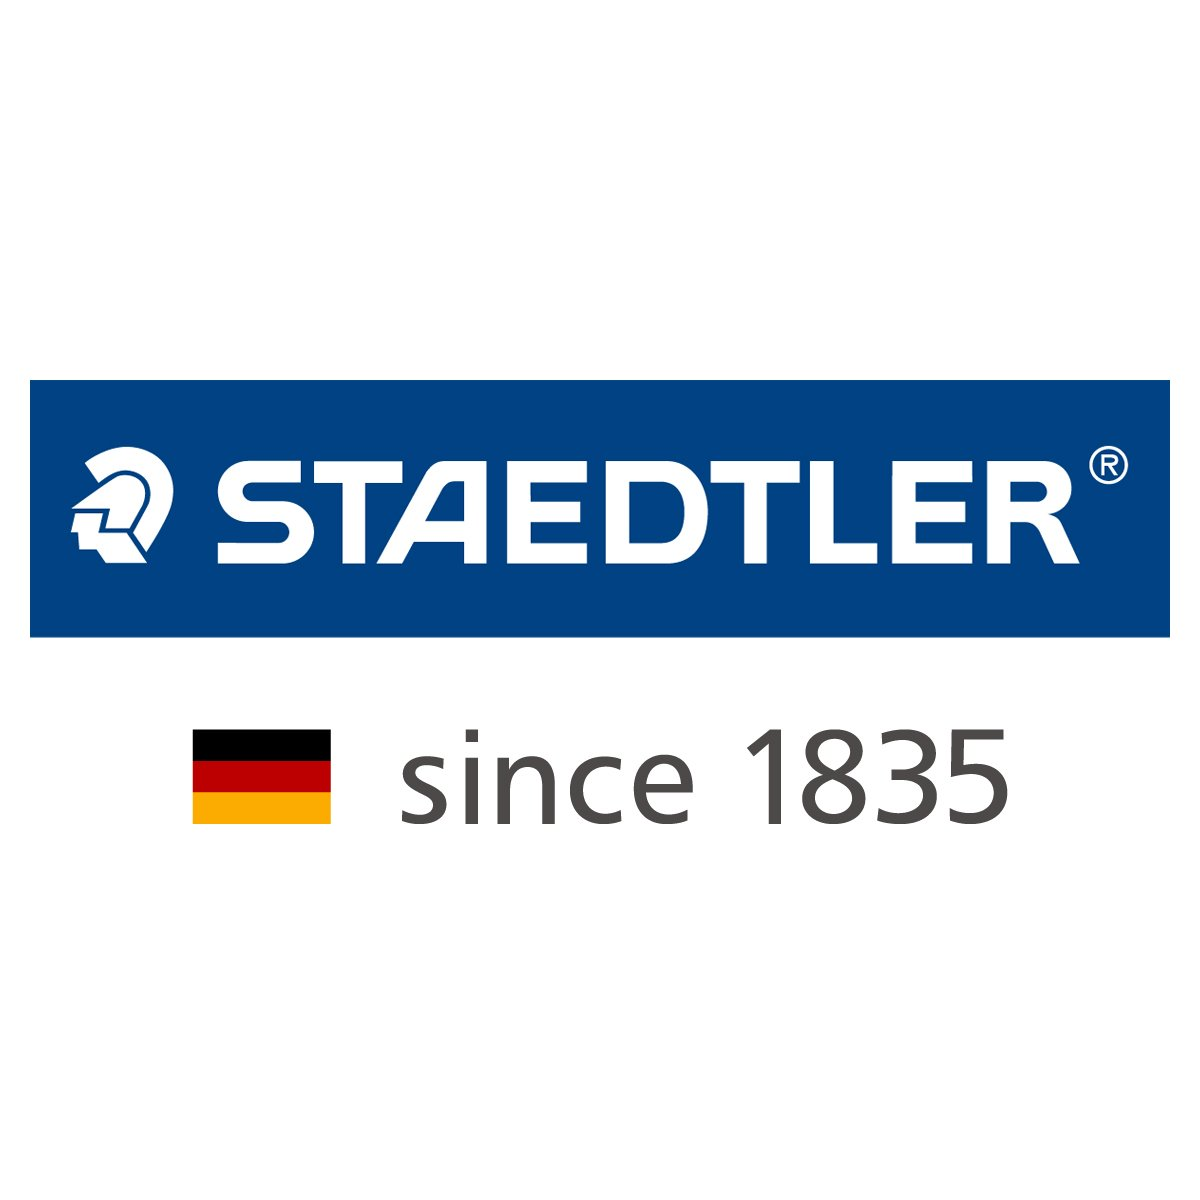 Staedtler Multi Function Avant Grade Cool Silver, Red Ink Ballpoint Pen Plus 0.5mm Mechanical Pencil (927AG-S) by Staedtler (Image #6)